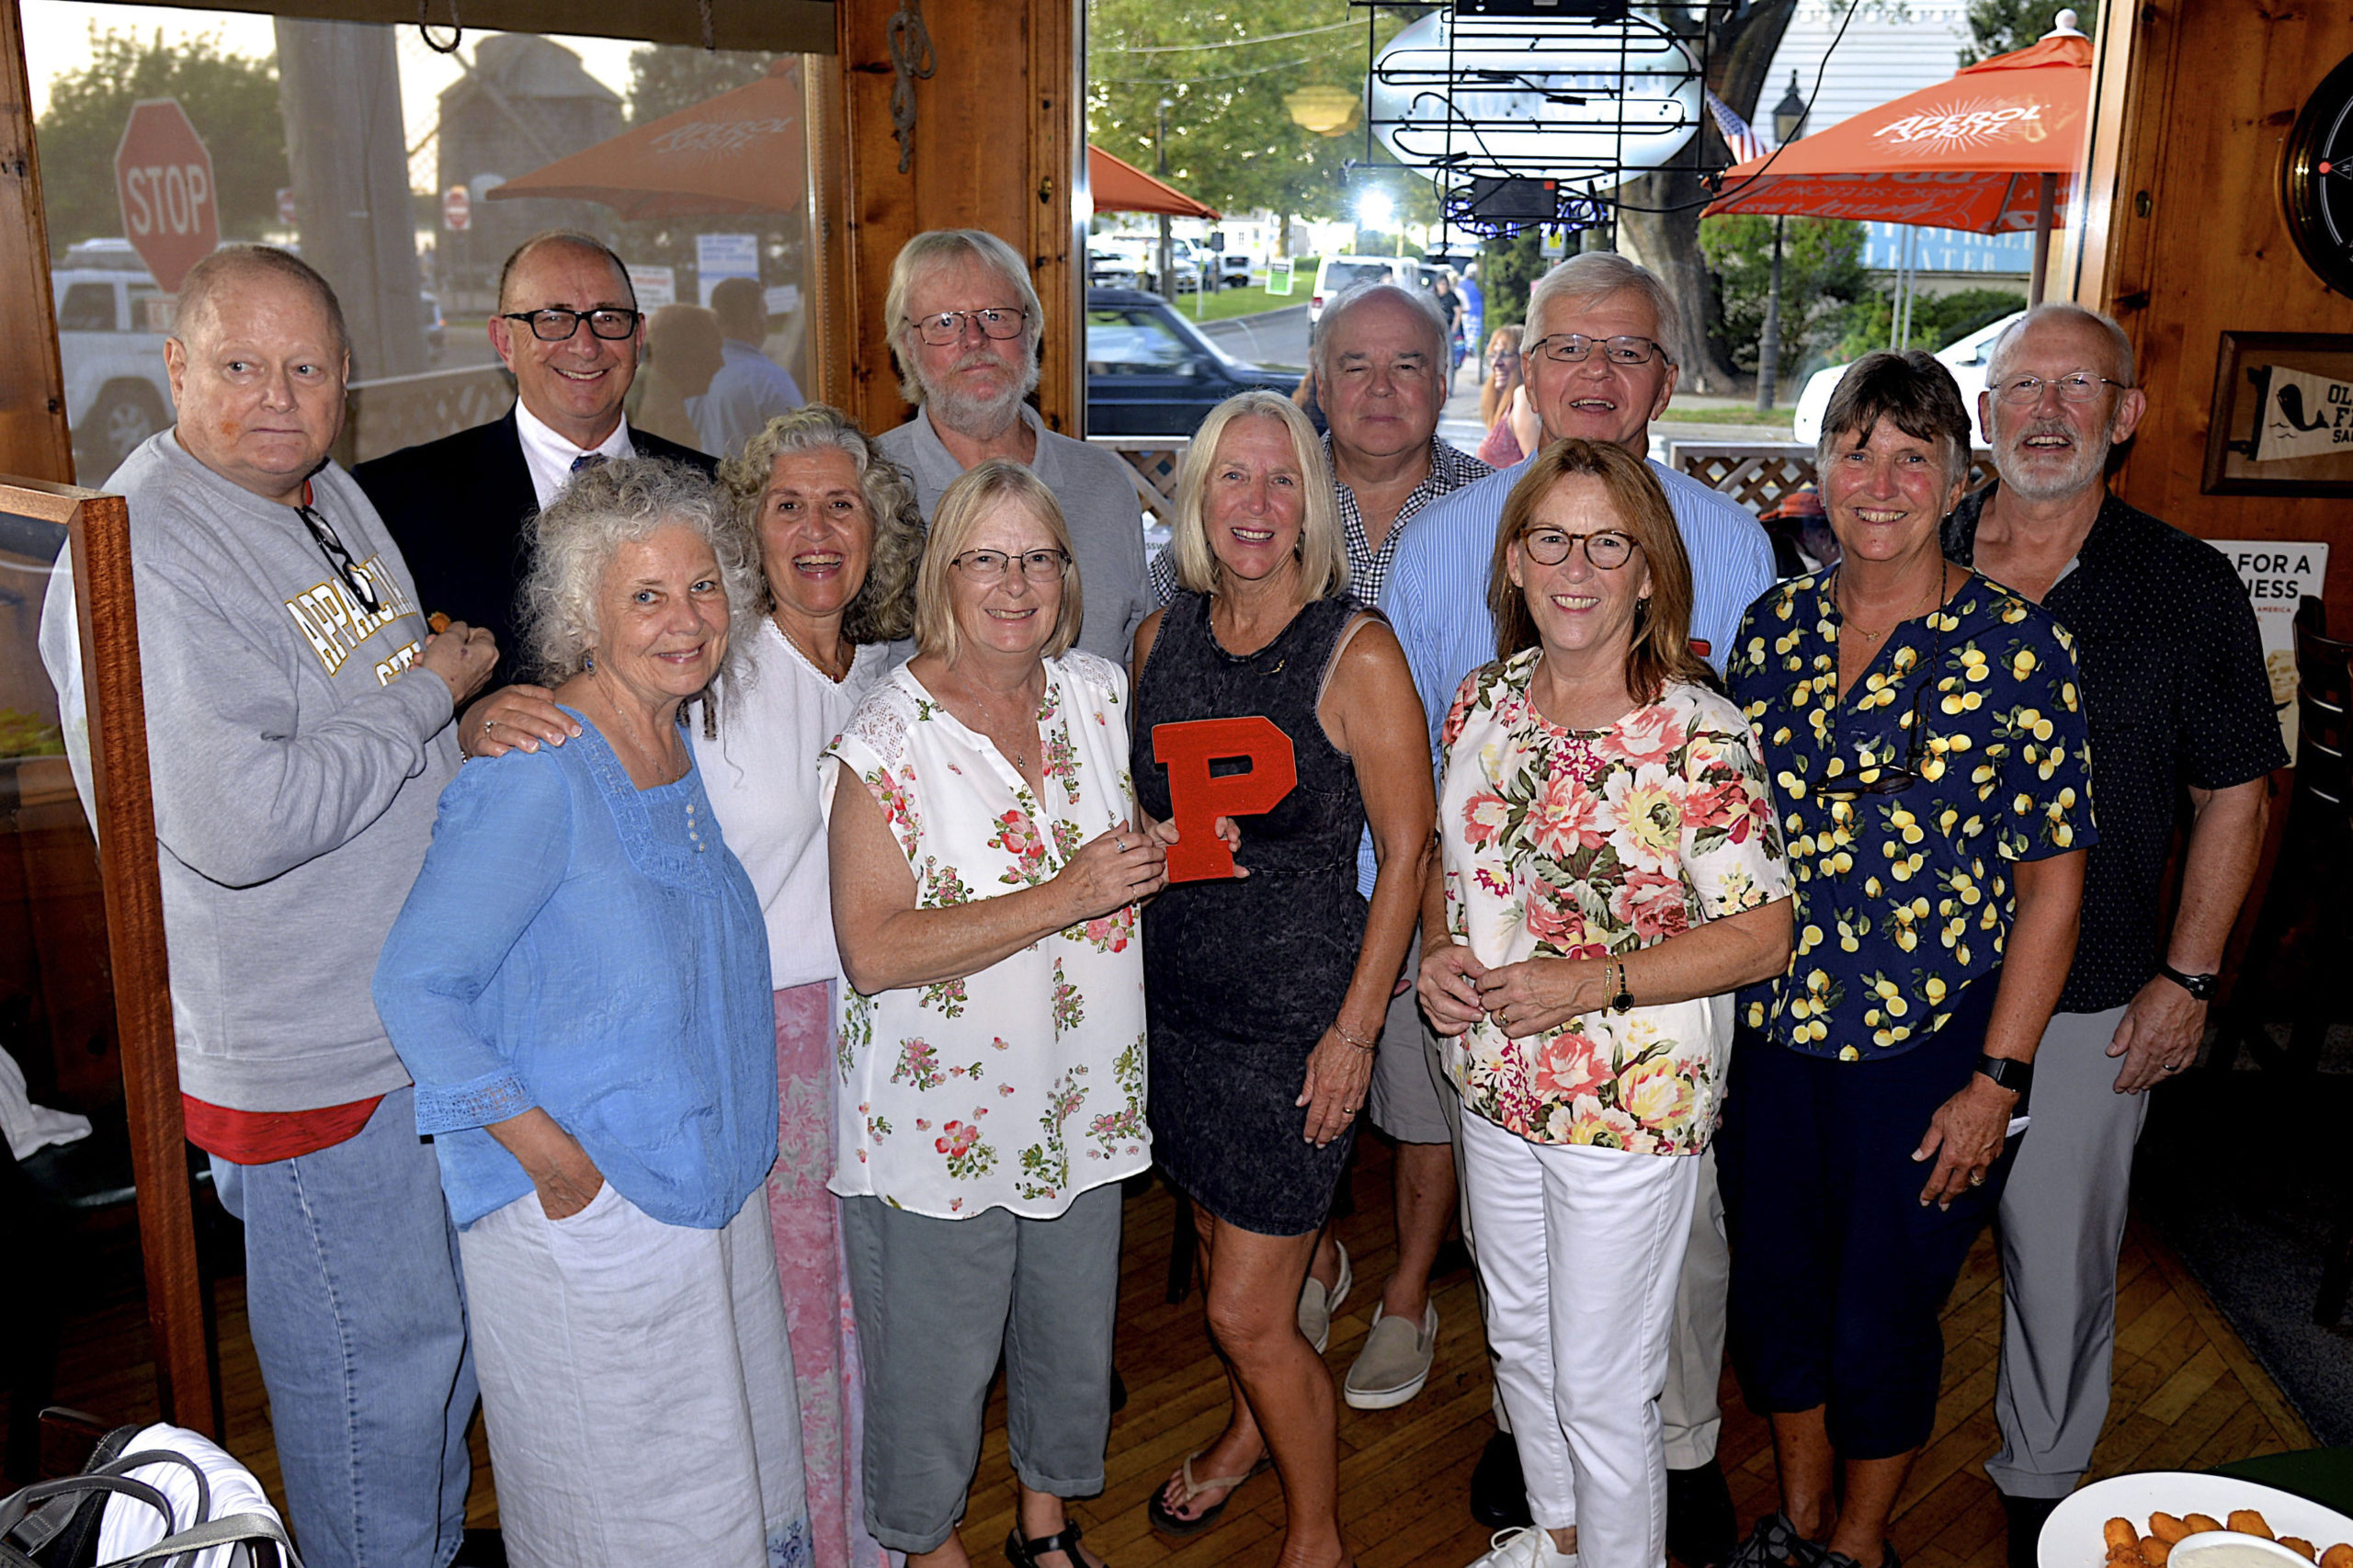 Some of the members of the Pierson Class of 1971, Michael Remkus, Steve Haerter, Marion Allen, Cathy Santacroce-Worwetz, Harold Worwetz, Colleen Stafford, Beth O'Sullivan, Tim Mott, Fred Thiele, Vee Bennett, Bethany Deyermond and Mark Weiderst, met at the Corner Bar in Sag harbor on Saturday evening to celebrate their 50th reunion.    KYRIL BROMLEY